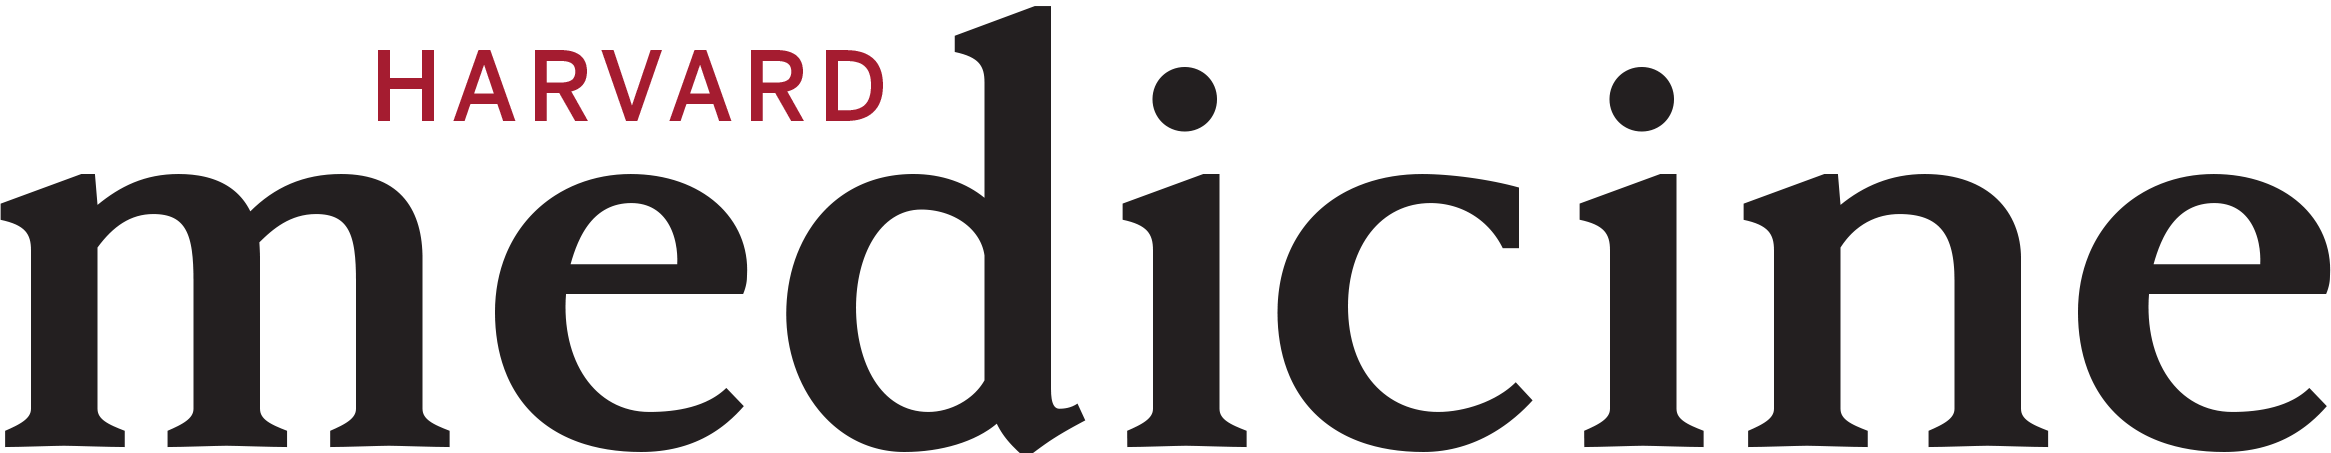 News outlet logo for harvard.edu